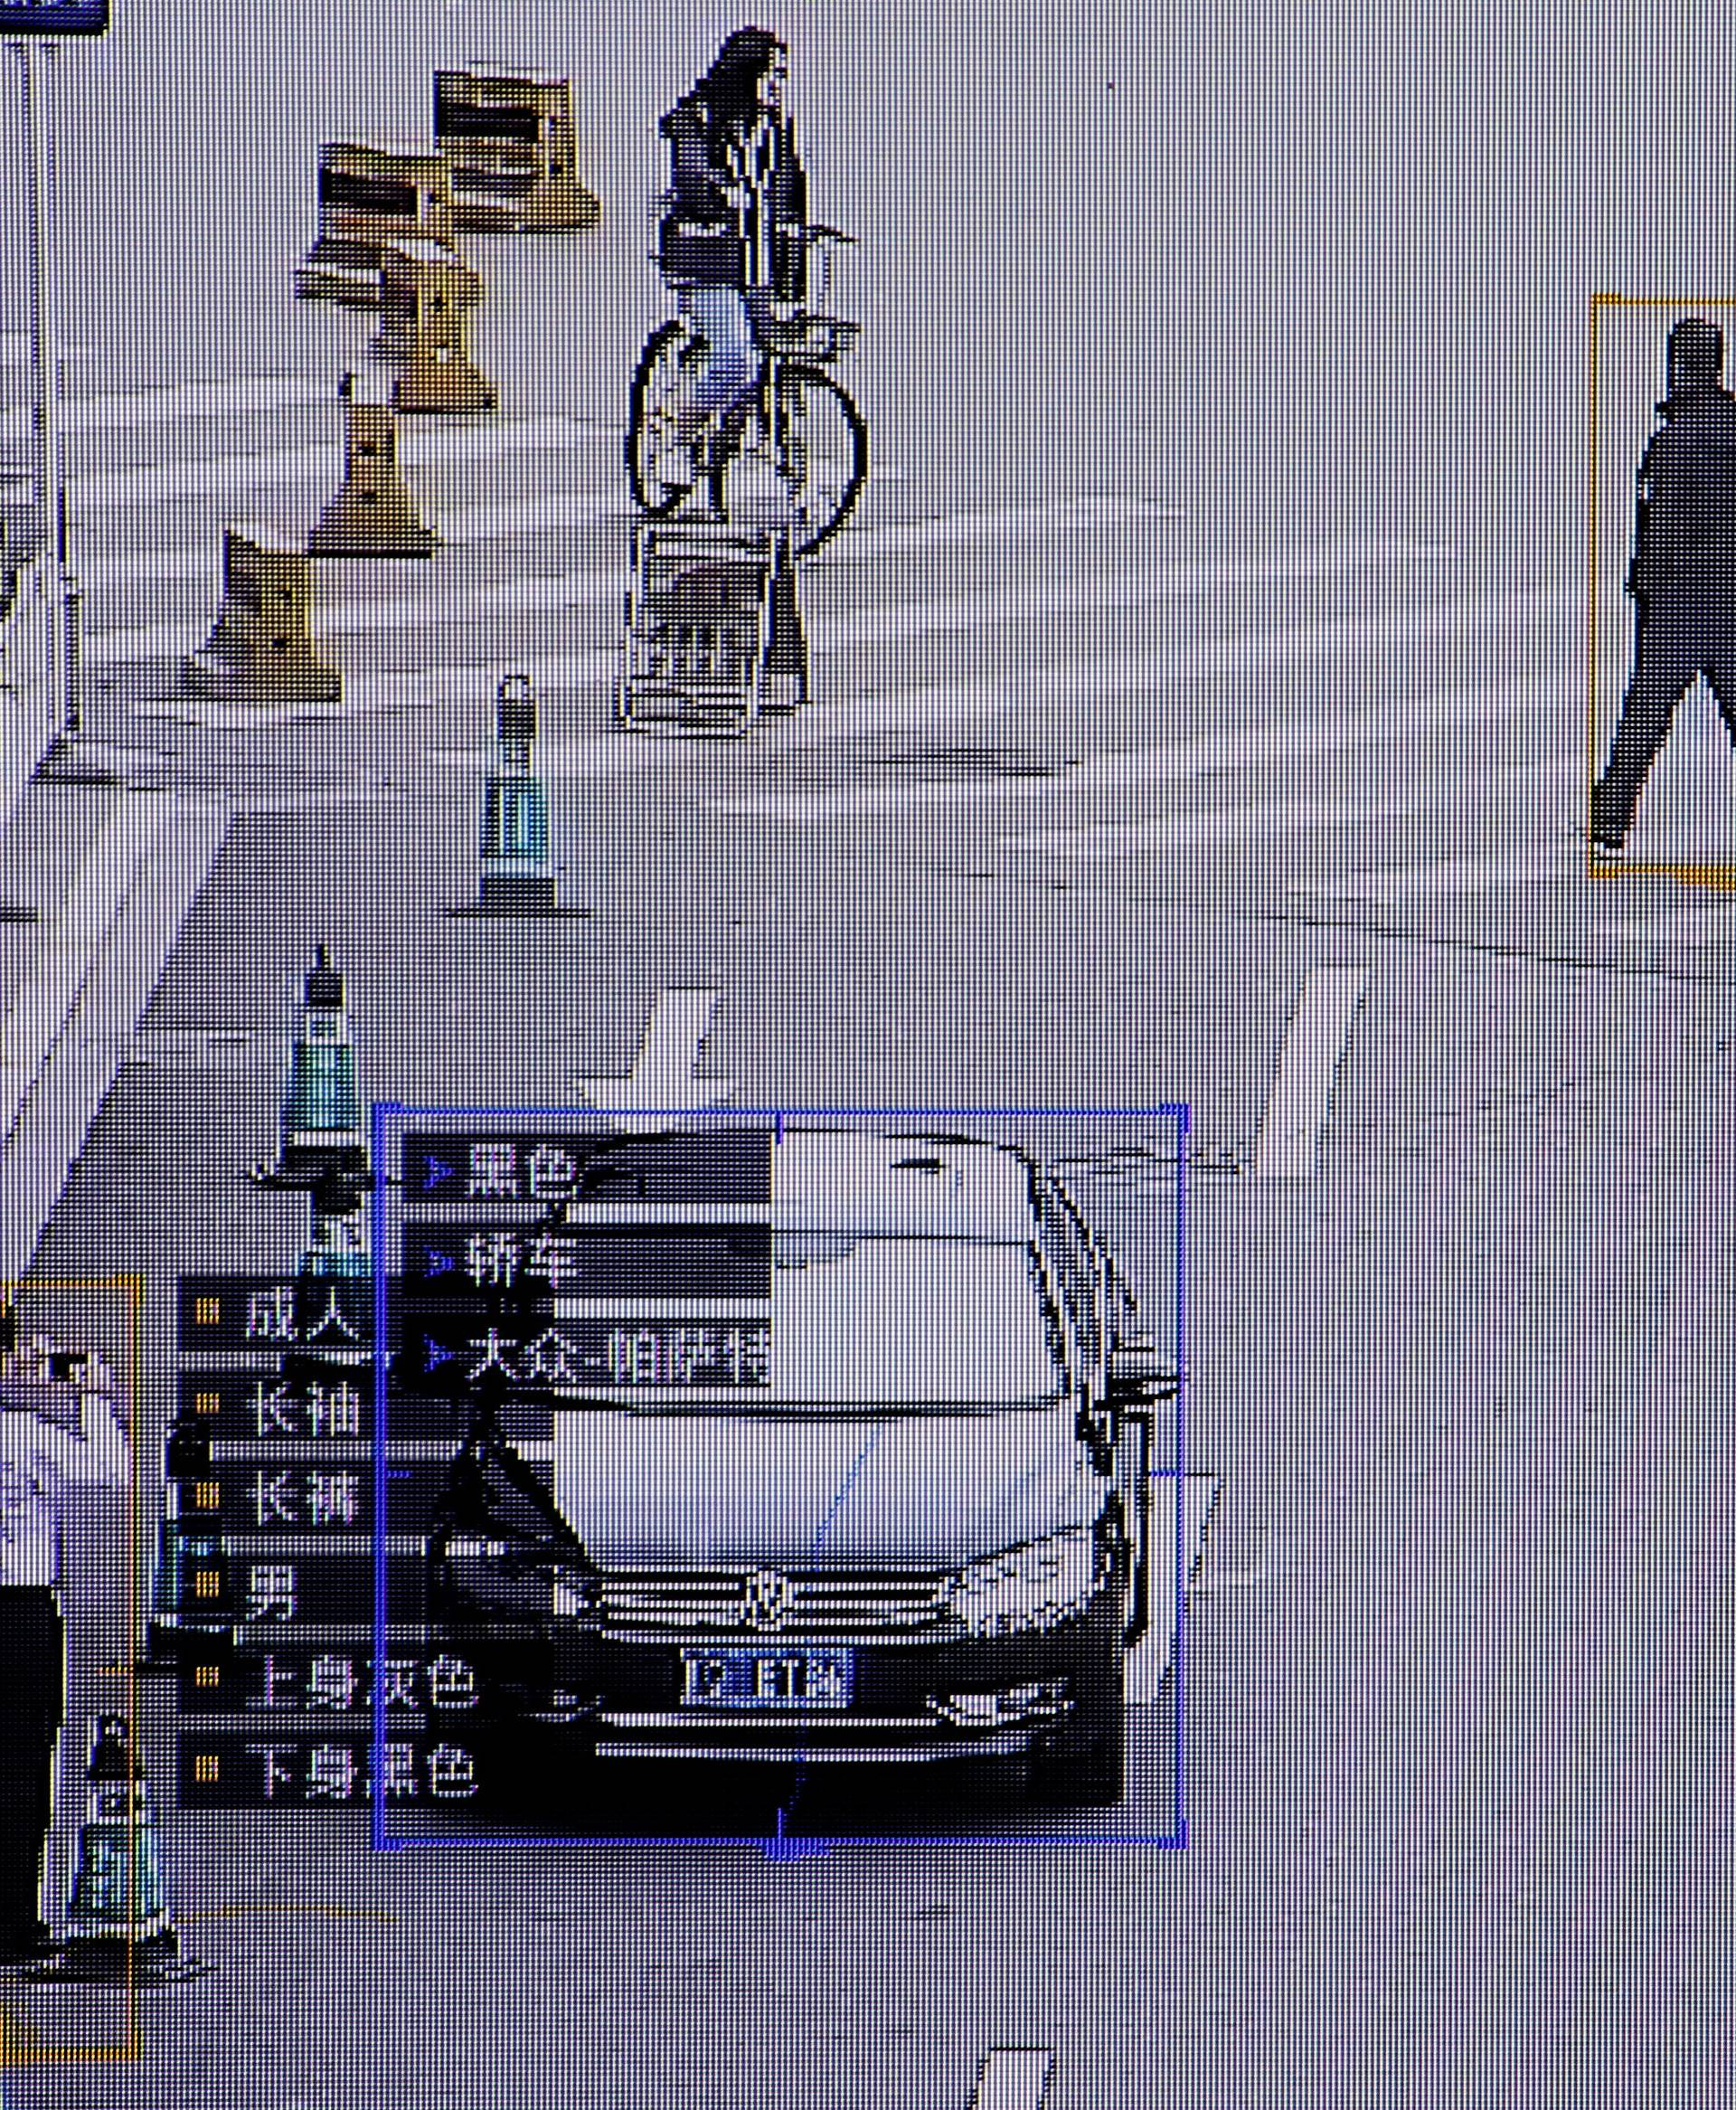 FILE PHOTO: SenseTime surveillance software identifying details about people and vehicles runs as a demonstration at the company's office in Beijing